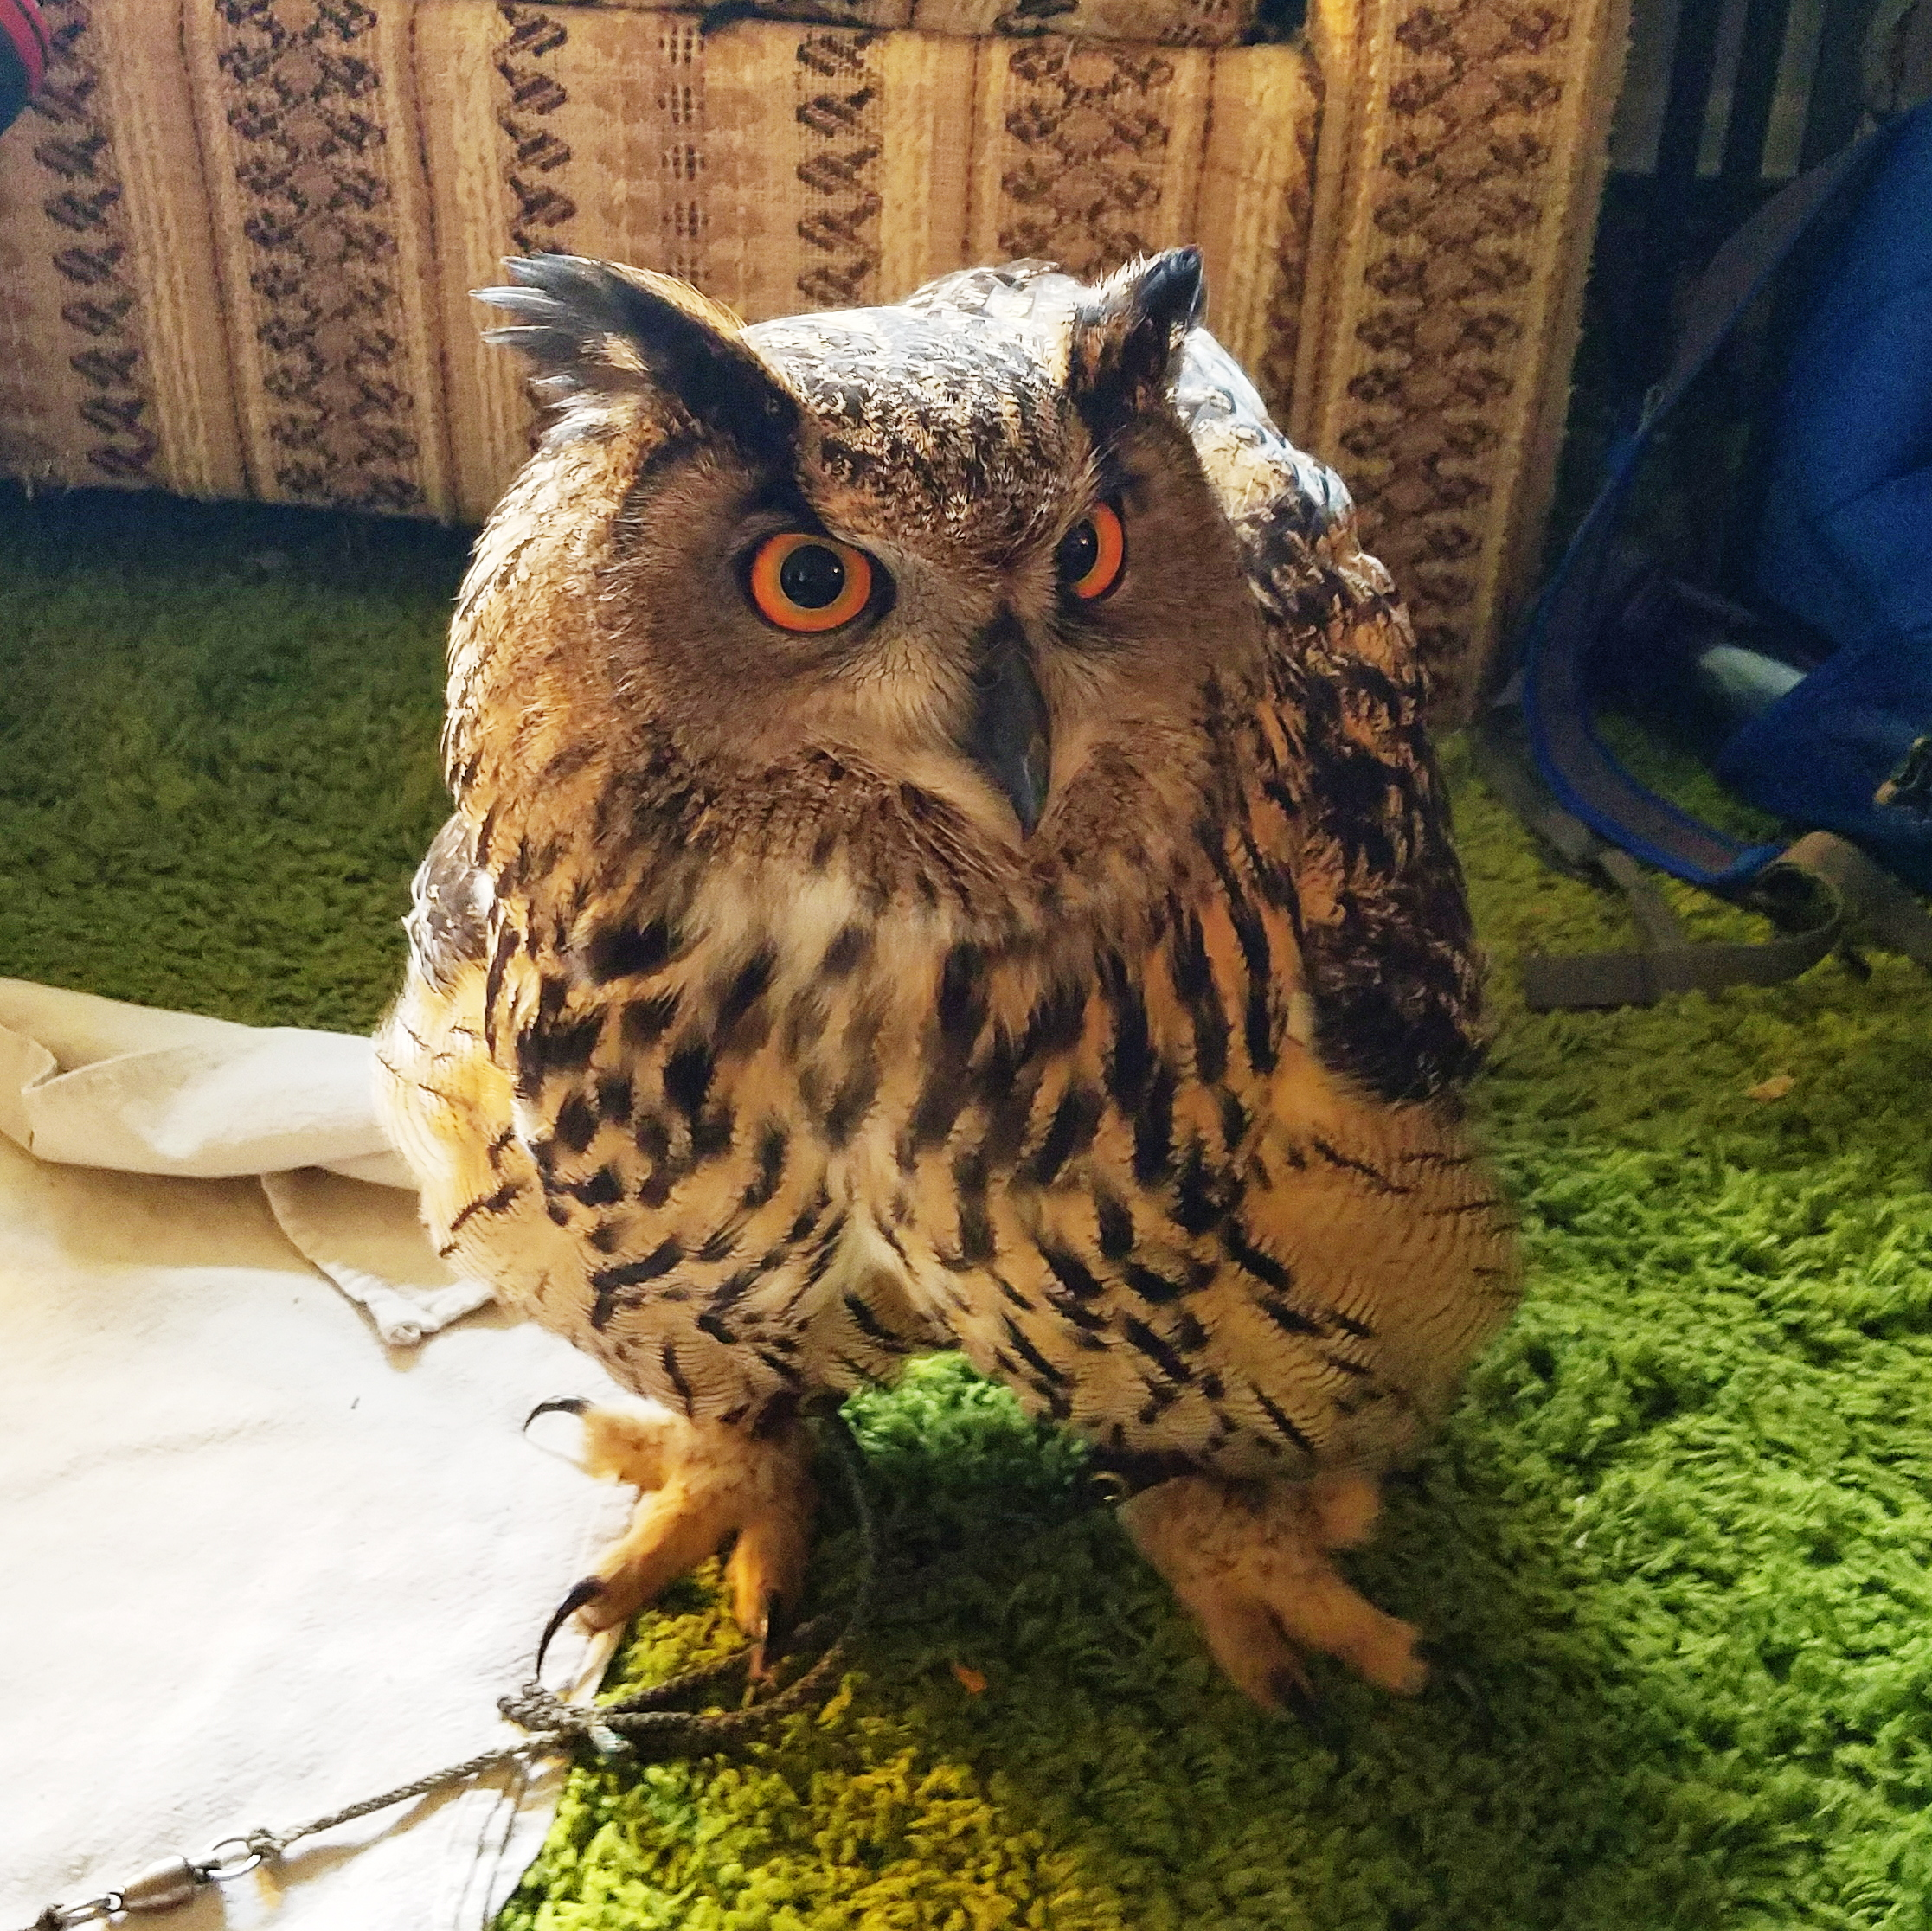 Ladybird the Eurasian eagle owl. She was SO impressive